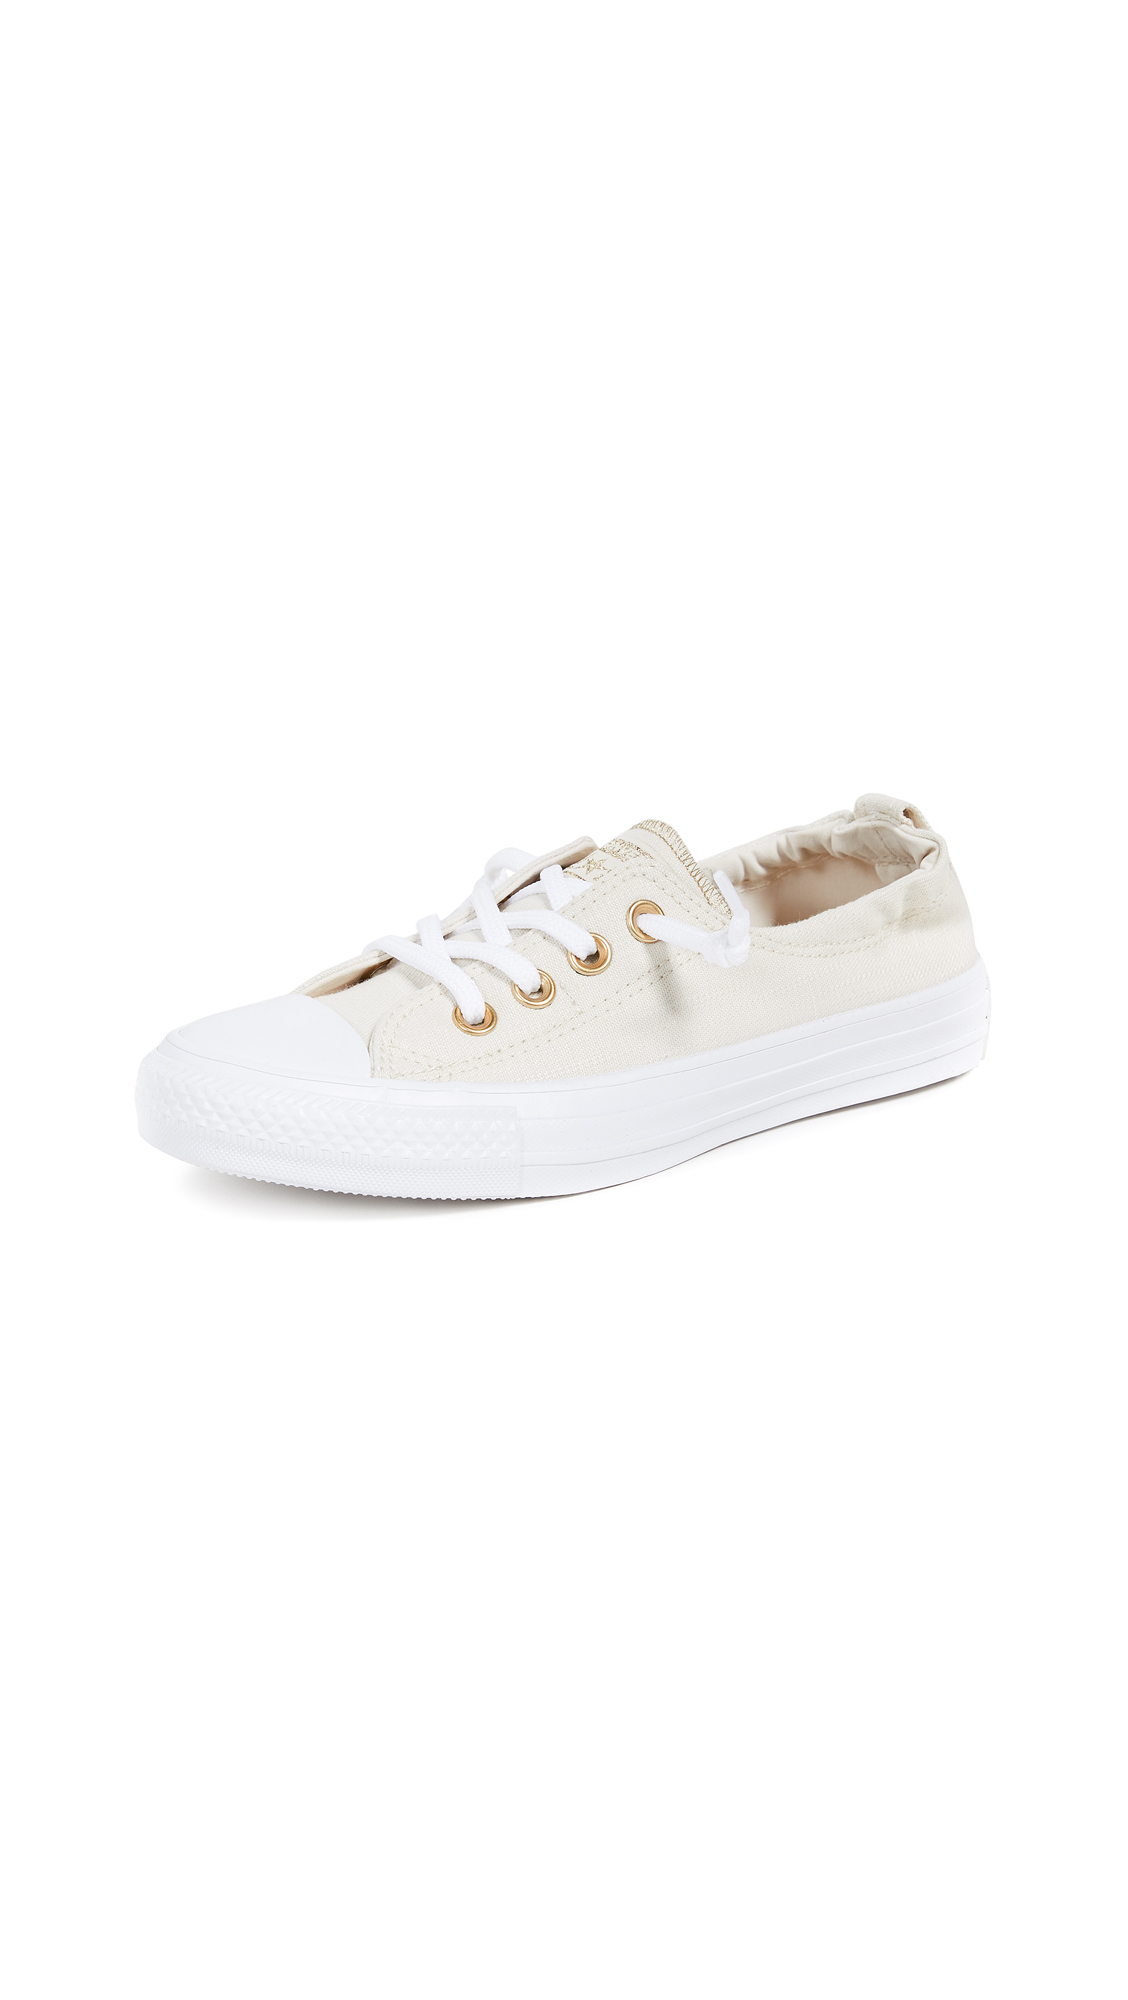 Converse Shoreline Lace Up Sneakers